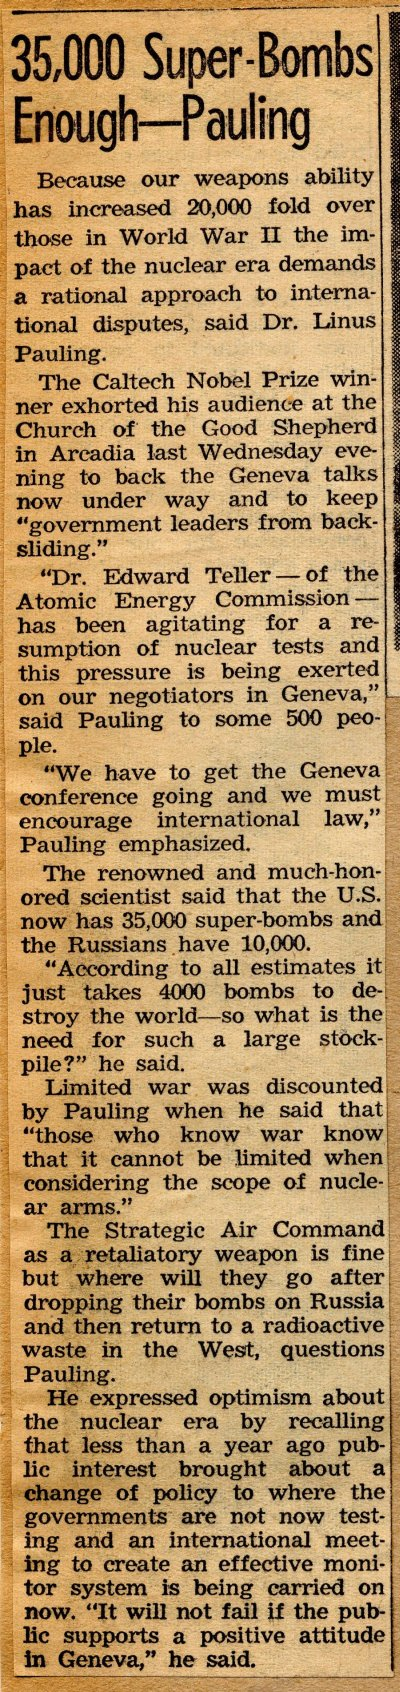 """35,000 Super-Bombs Enough -- Pauling."" Page 1. February 4, 1959"